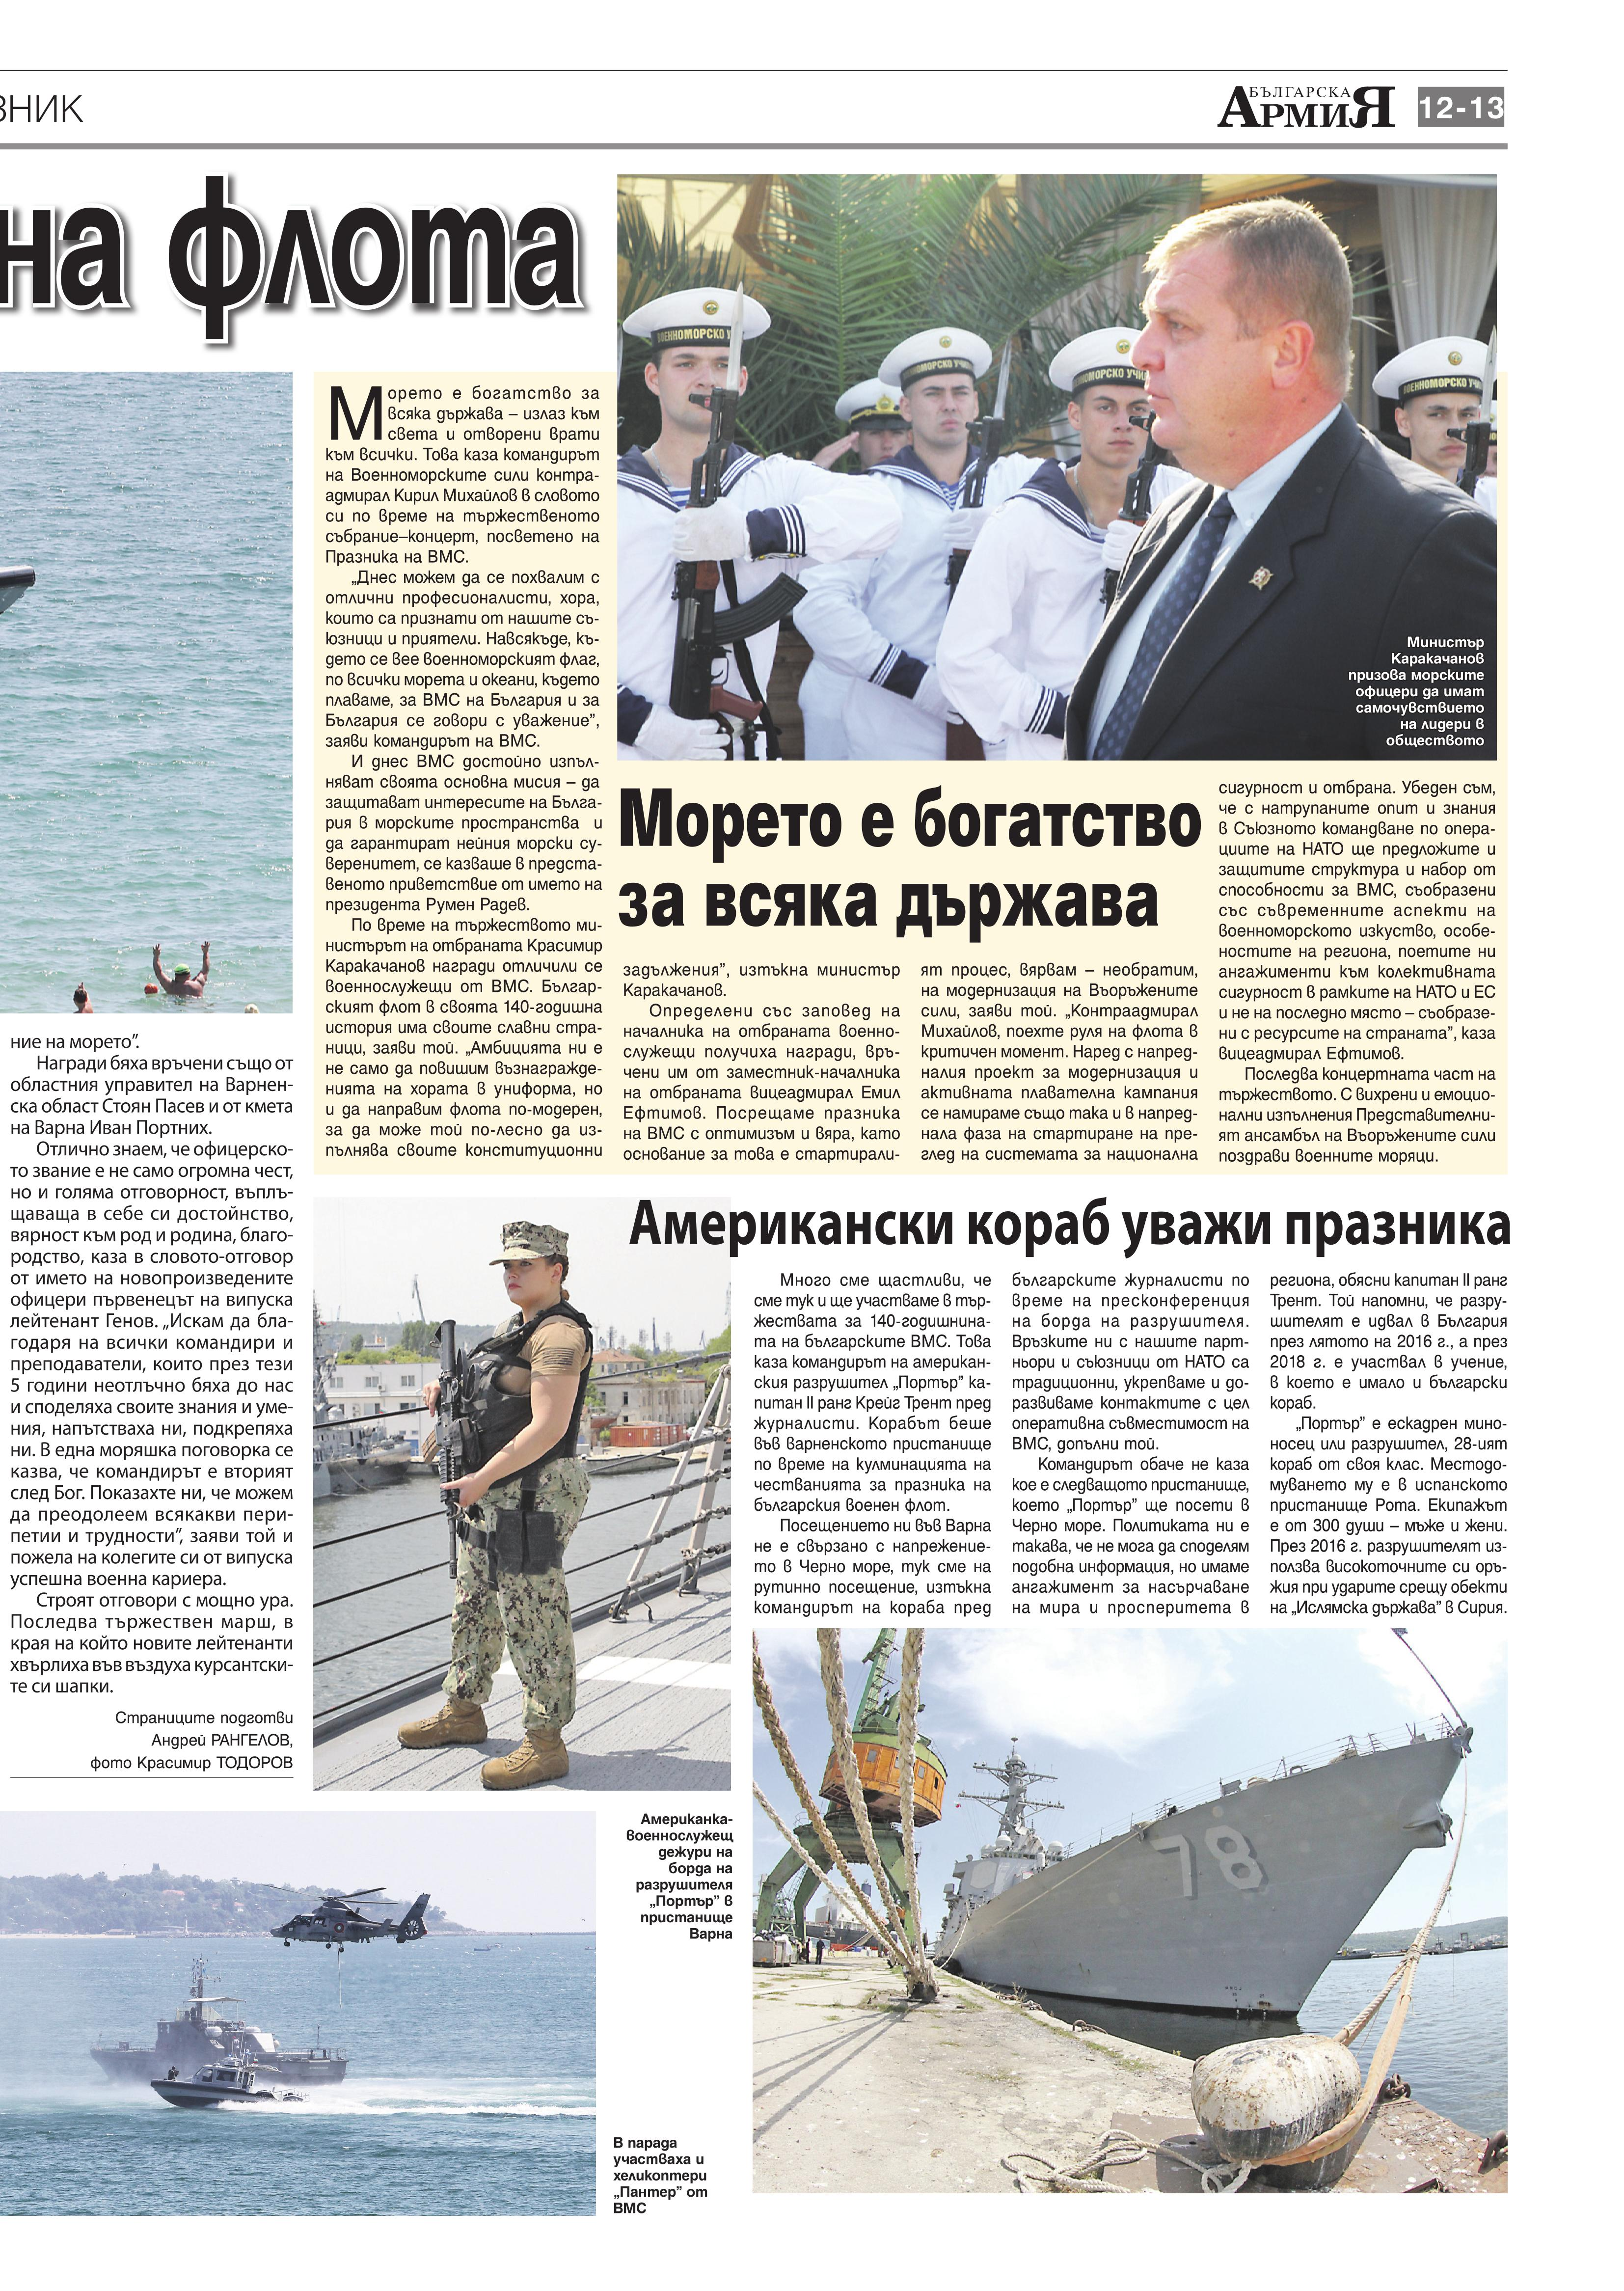 https://www.armymedia.bg/wp-content/uploads/2015/06/13.page1_-107.jpg